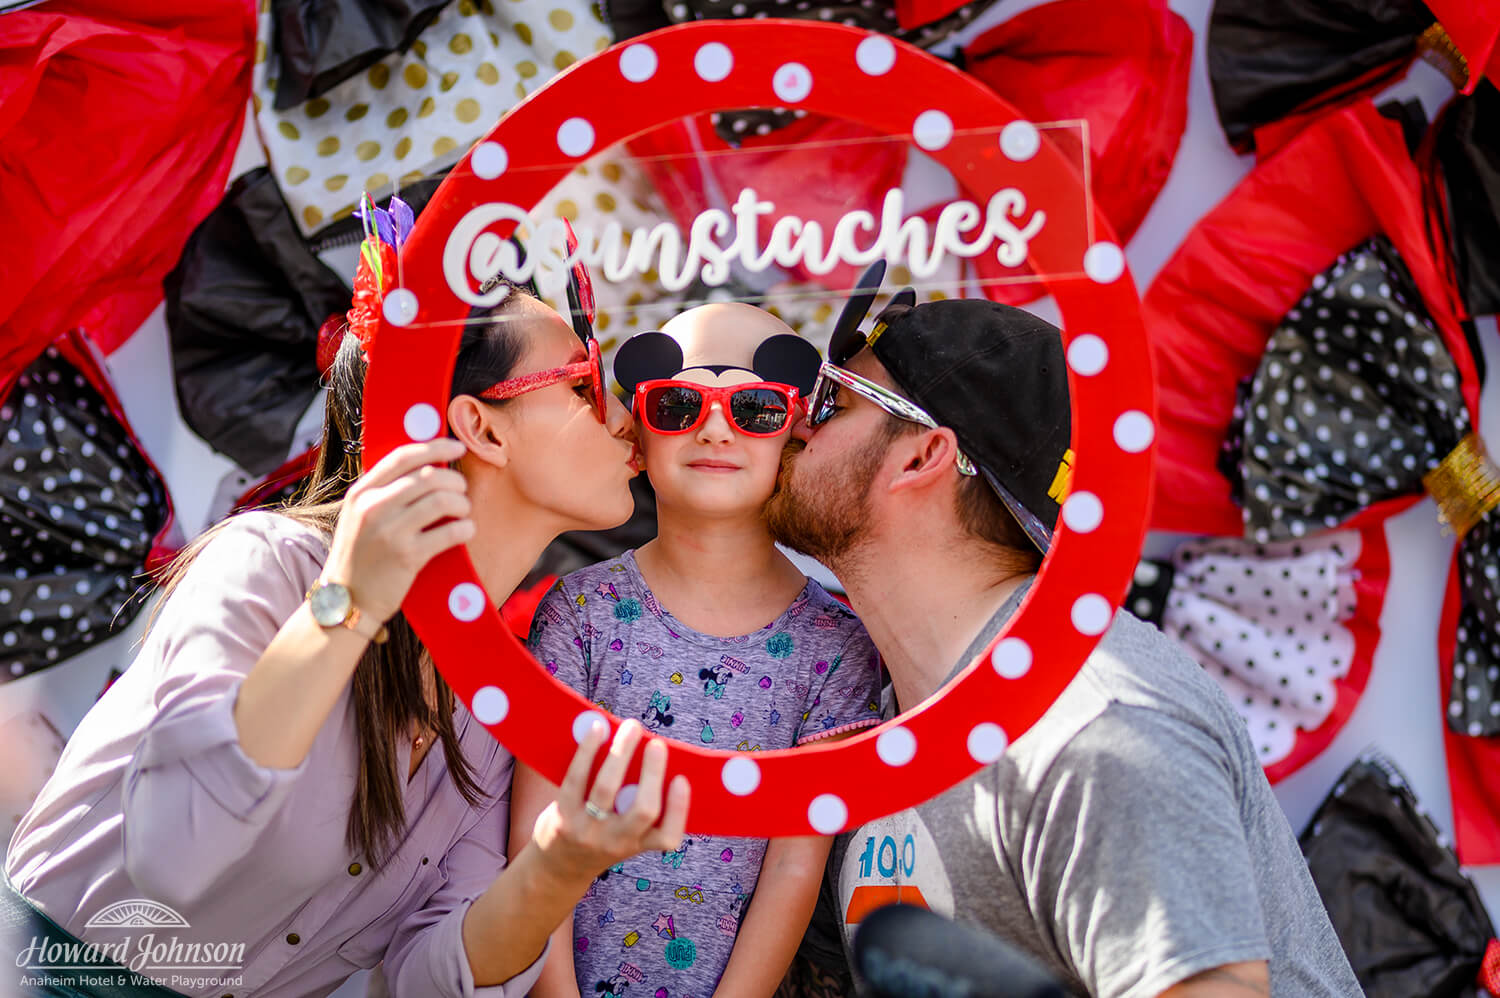 a mother and father give their daughter a kiss on the cheek while posing for a photo with a circular polka dot frame and social media handle